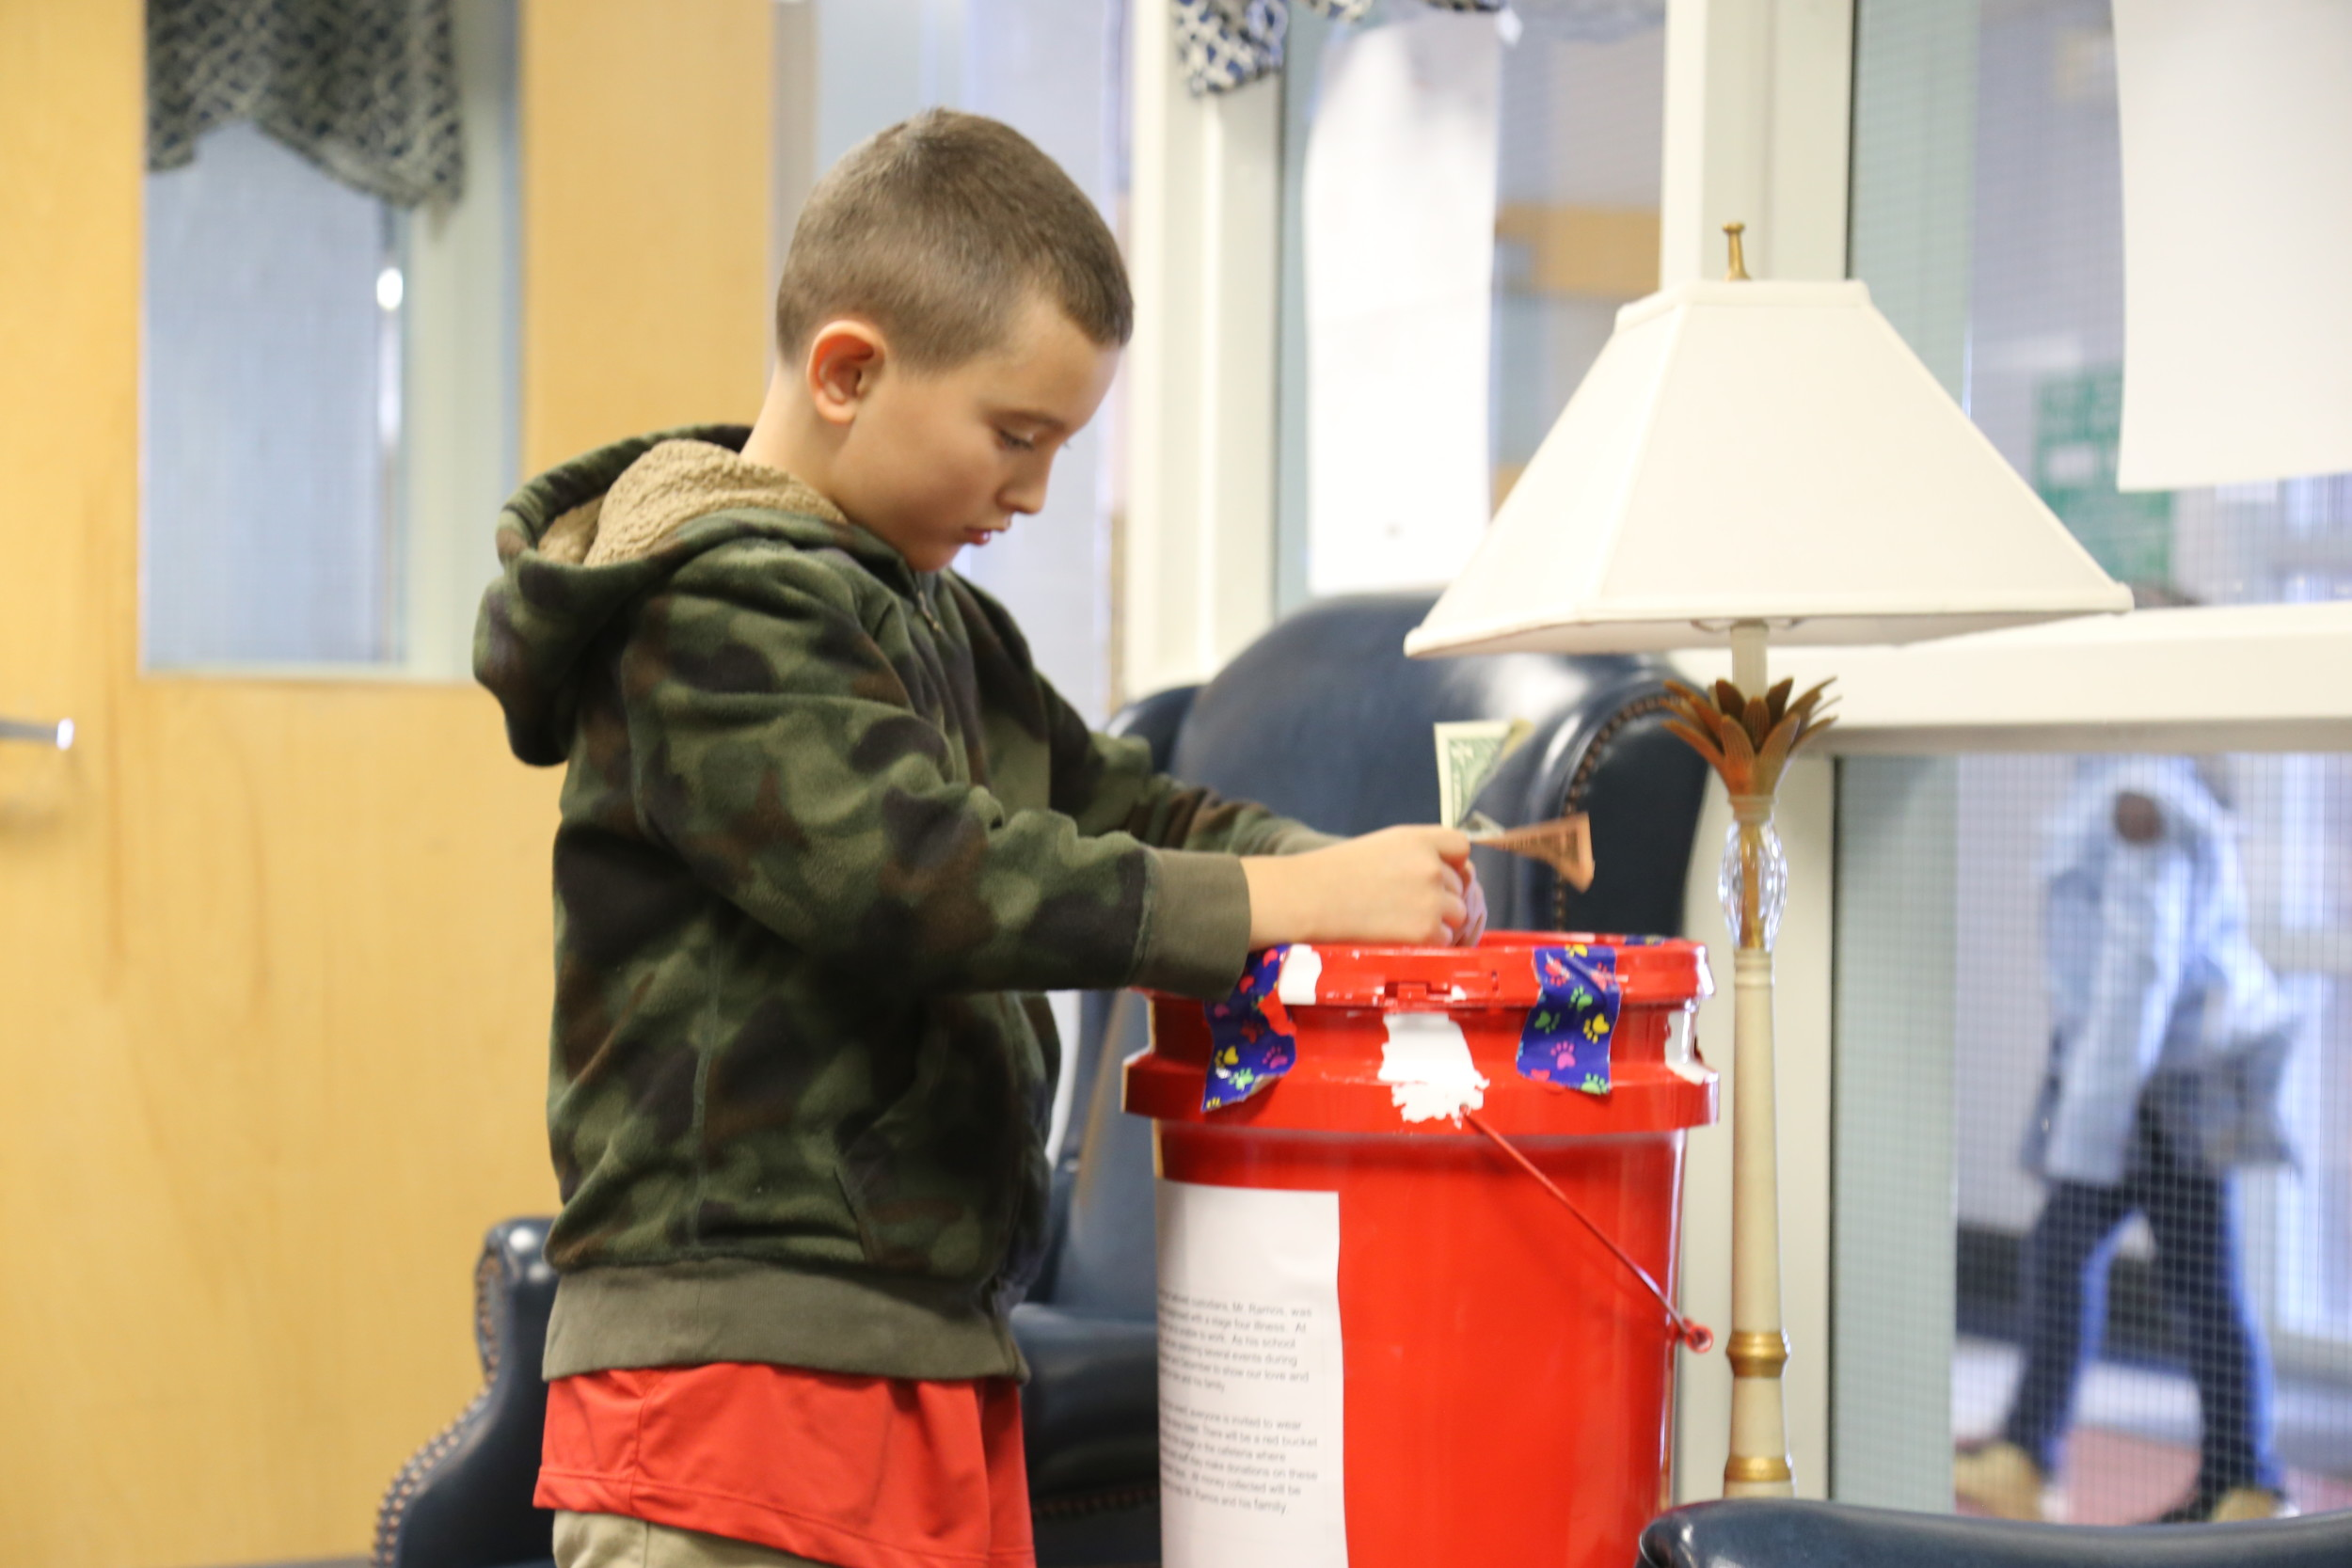 Shaw Heights Elementary School student Federico Murray donates a couple dollars on Tuesday into a bucket at the school designated for offerings to school custodian Daniel Ramos.